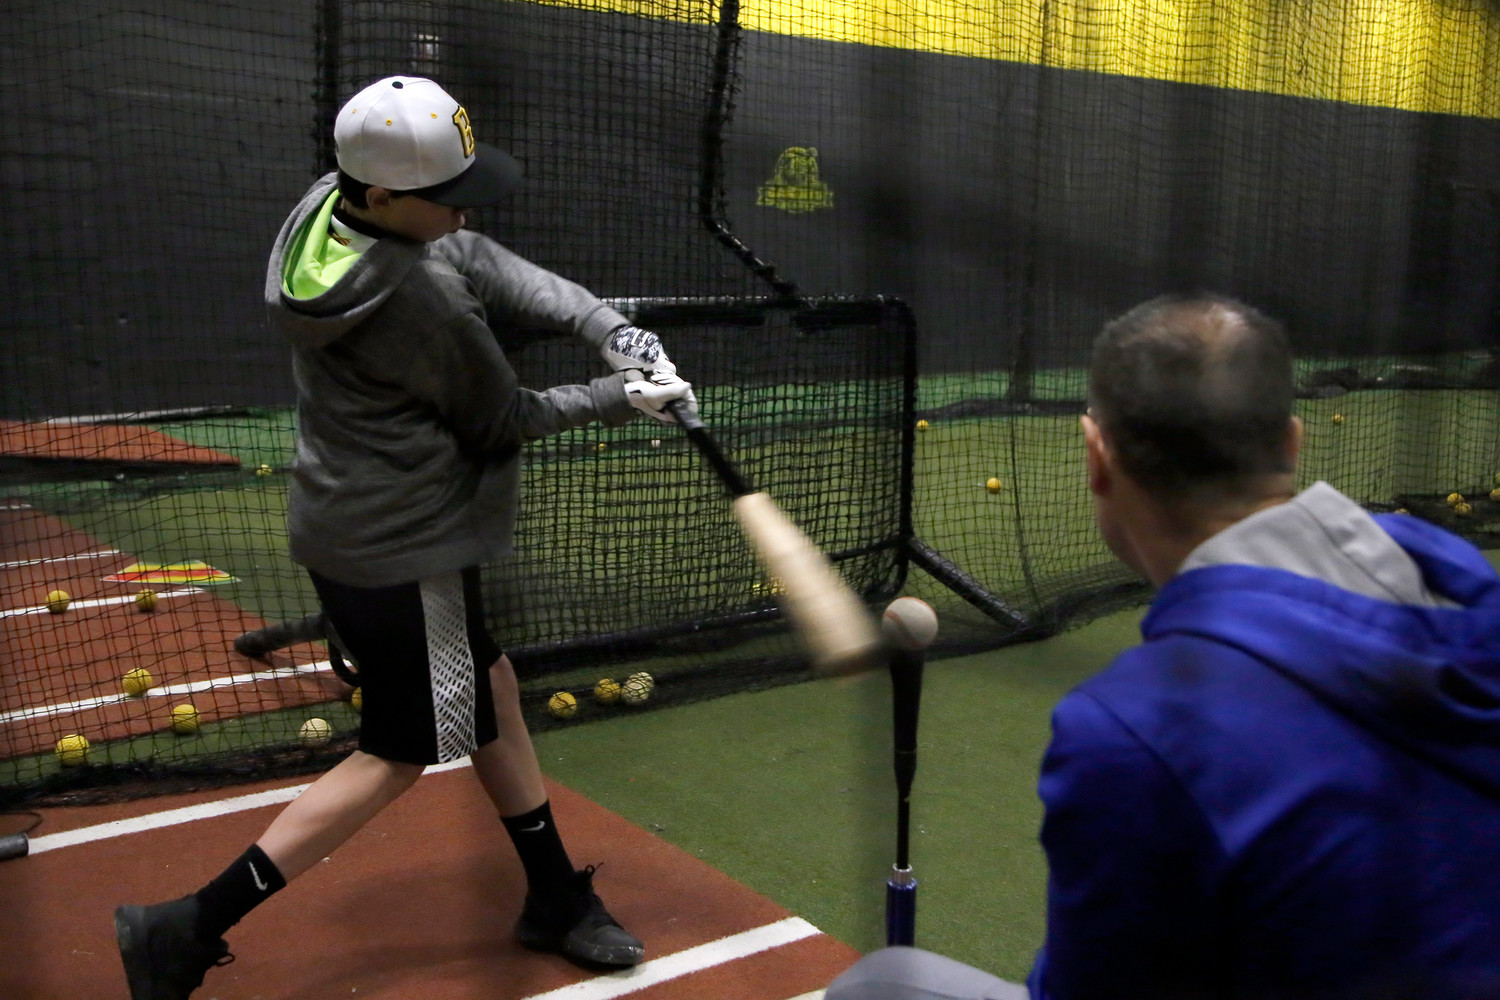 John Miedreich gives 13-year old Malverne resident Brendan Connolly some batting tips.